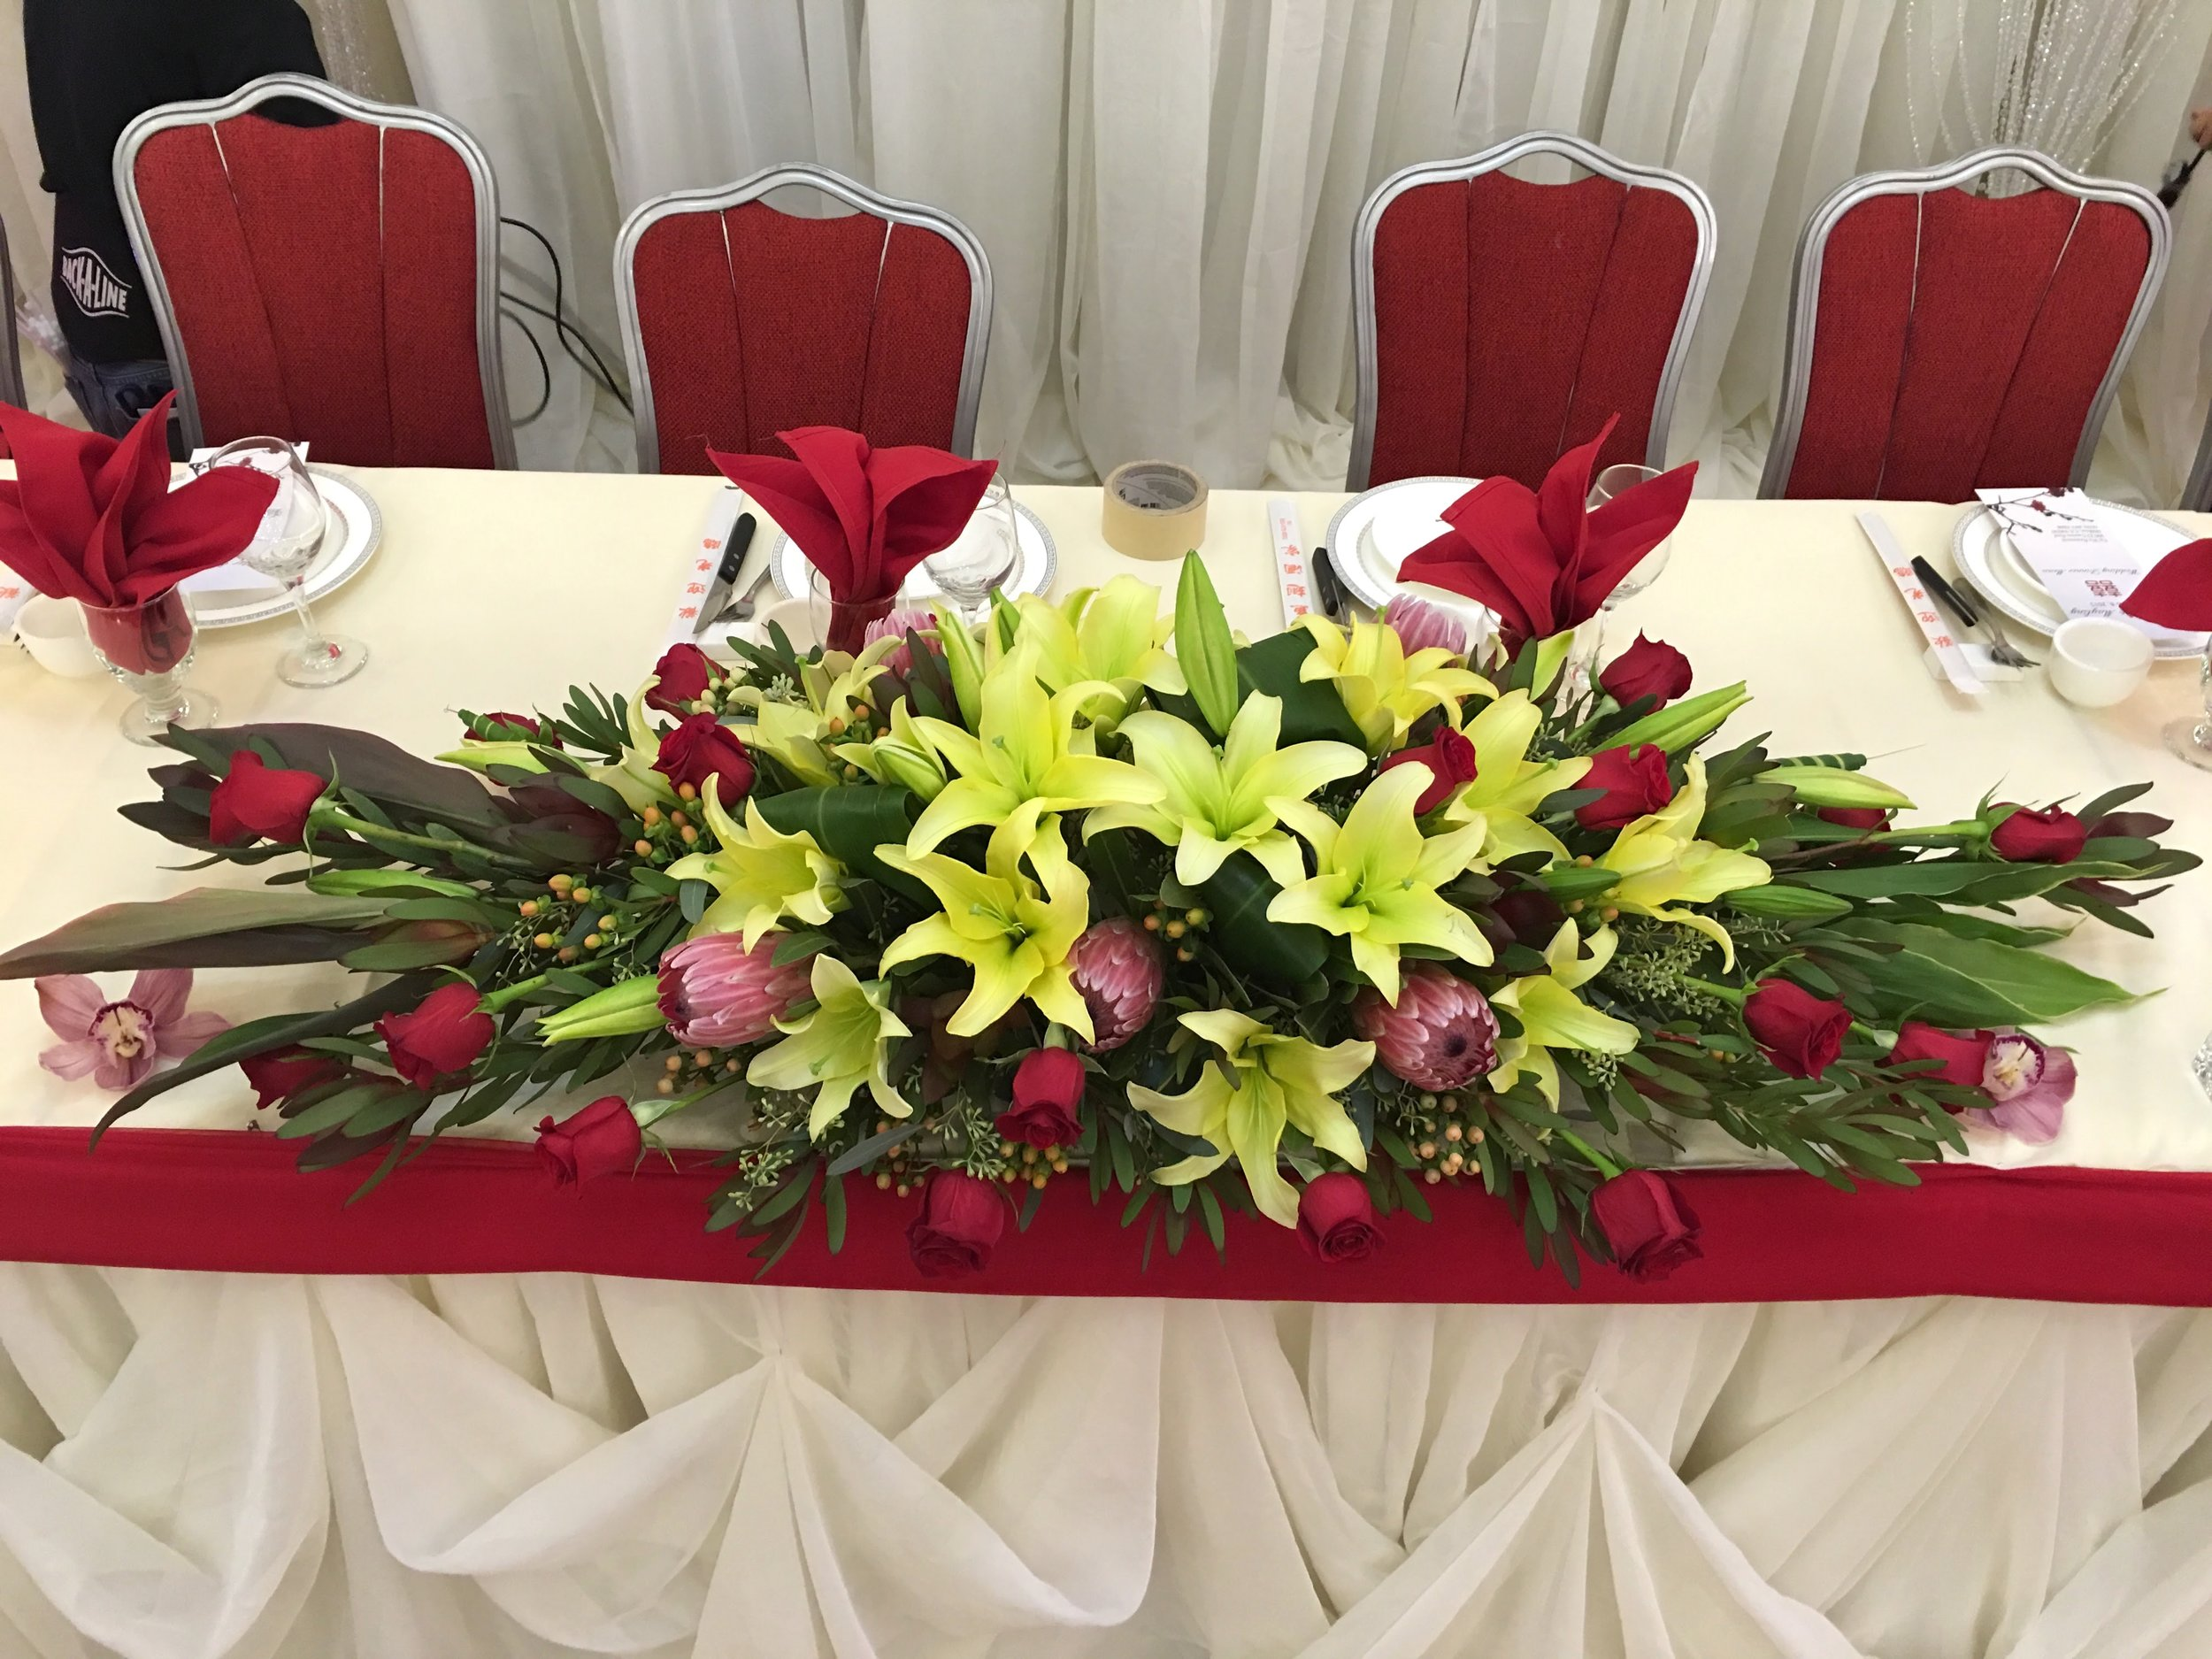 - We wanted to create a focal point in this wedding centerpiece using lilies to draw attention. With the brightest colors in the middle, this centerpiece leads your eyes straight to the bride and groom.